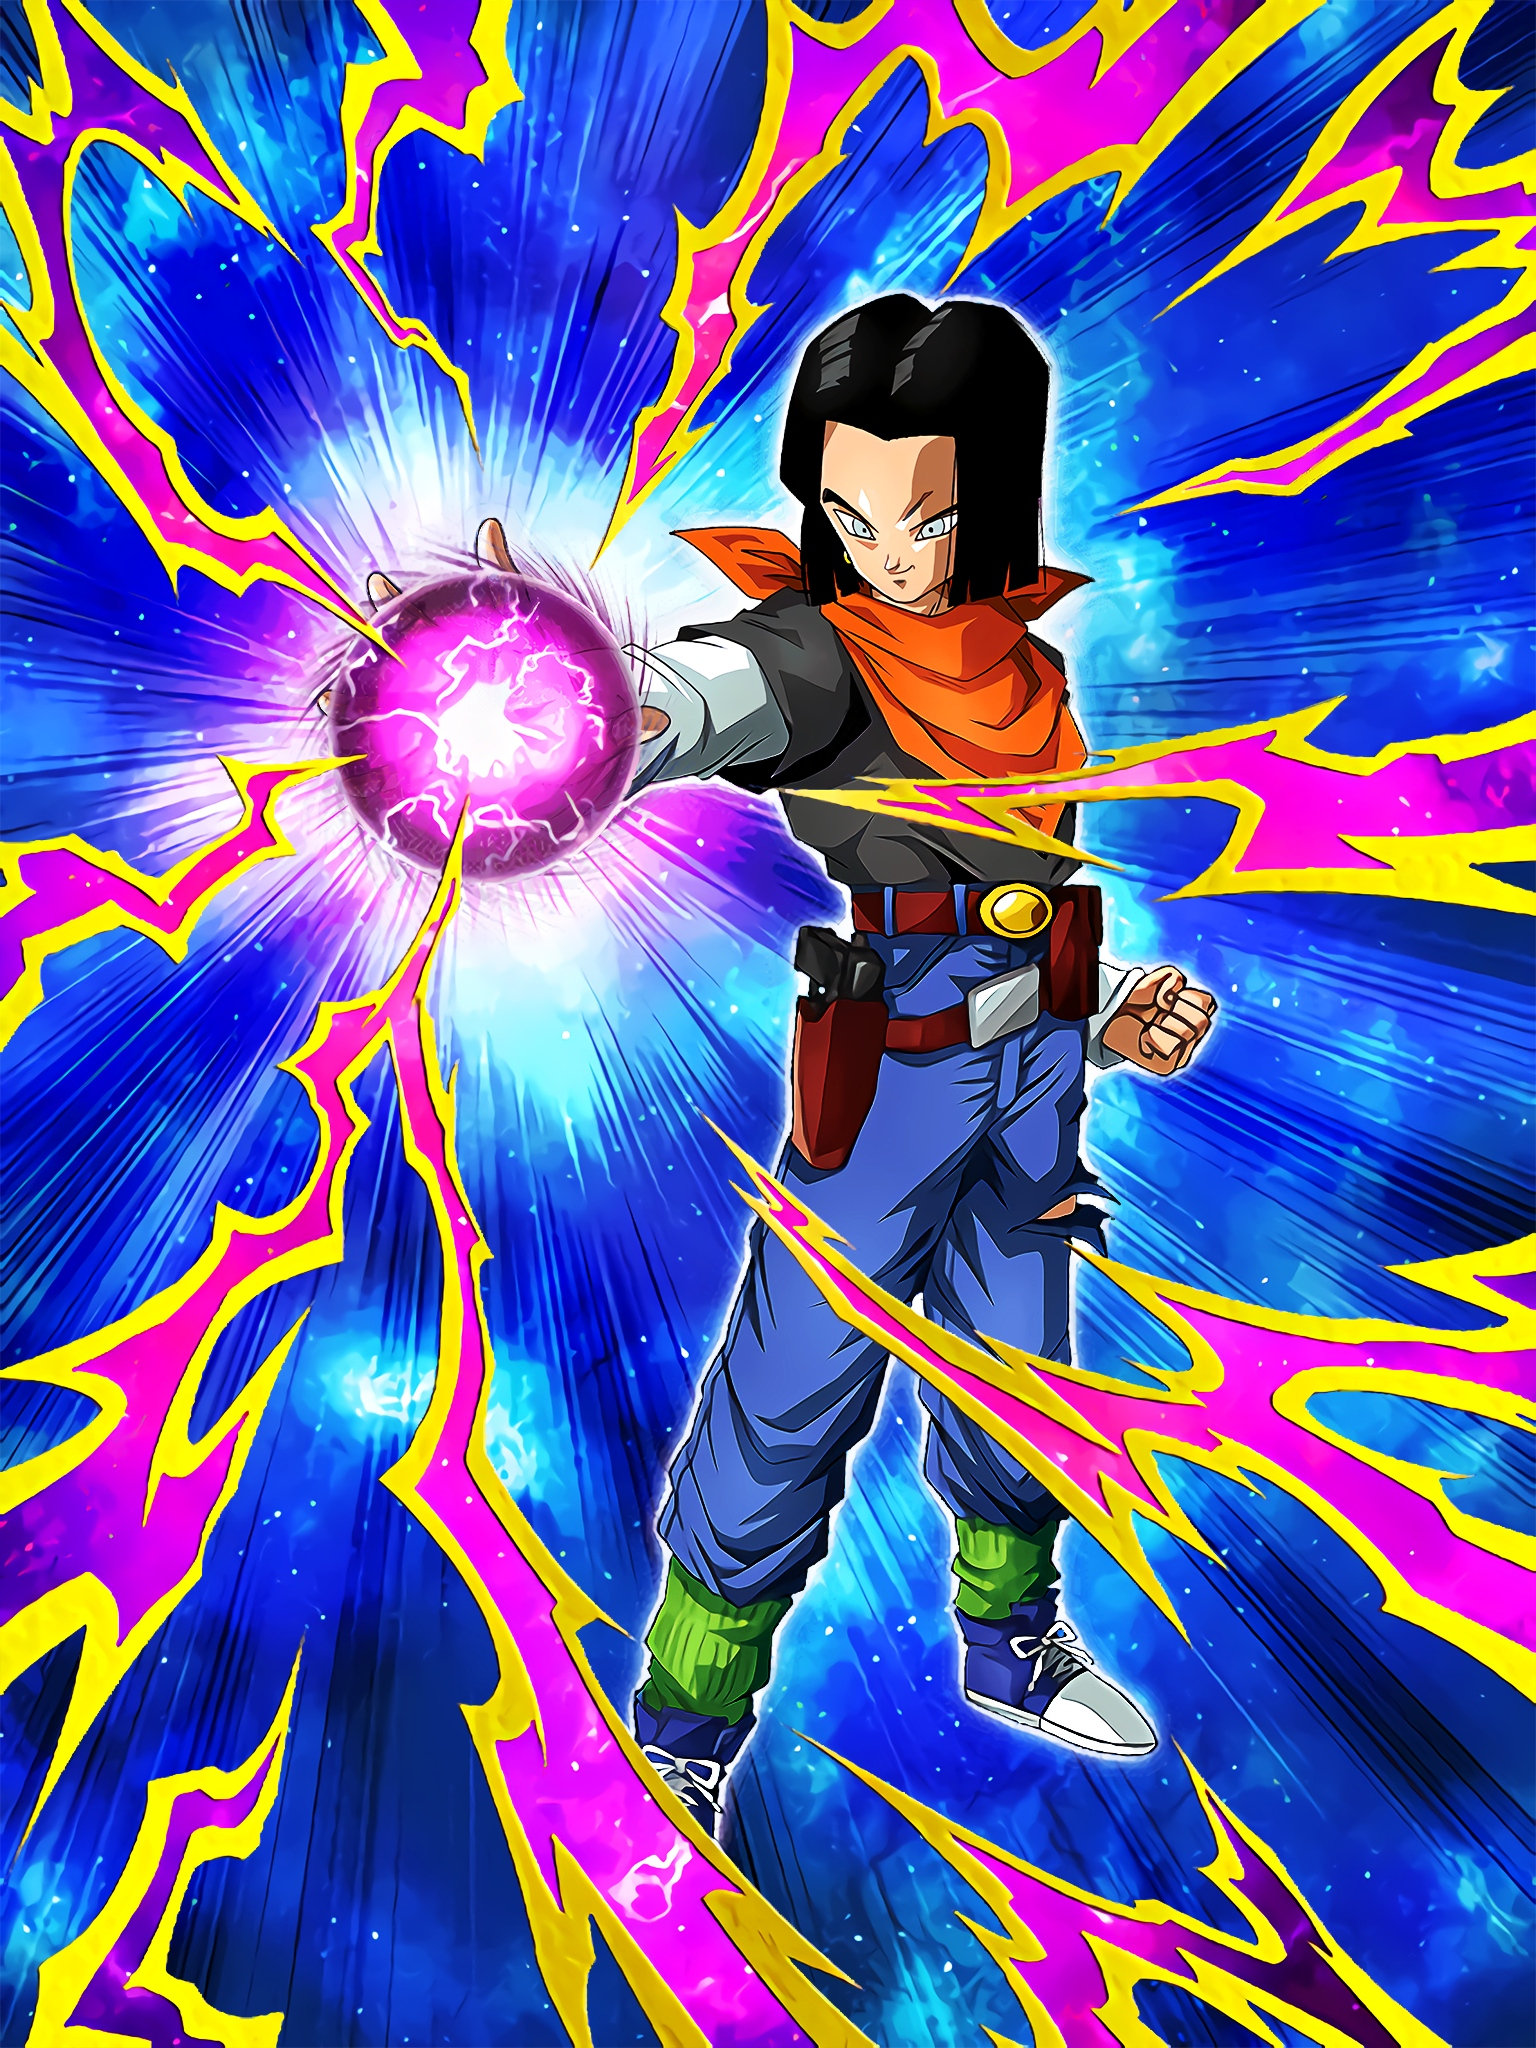 Integration of Two Technologies Hellfighter Android 17 Art (Dragon Ball Z Dokkan Battle).jpg